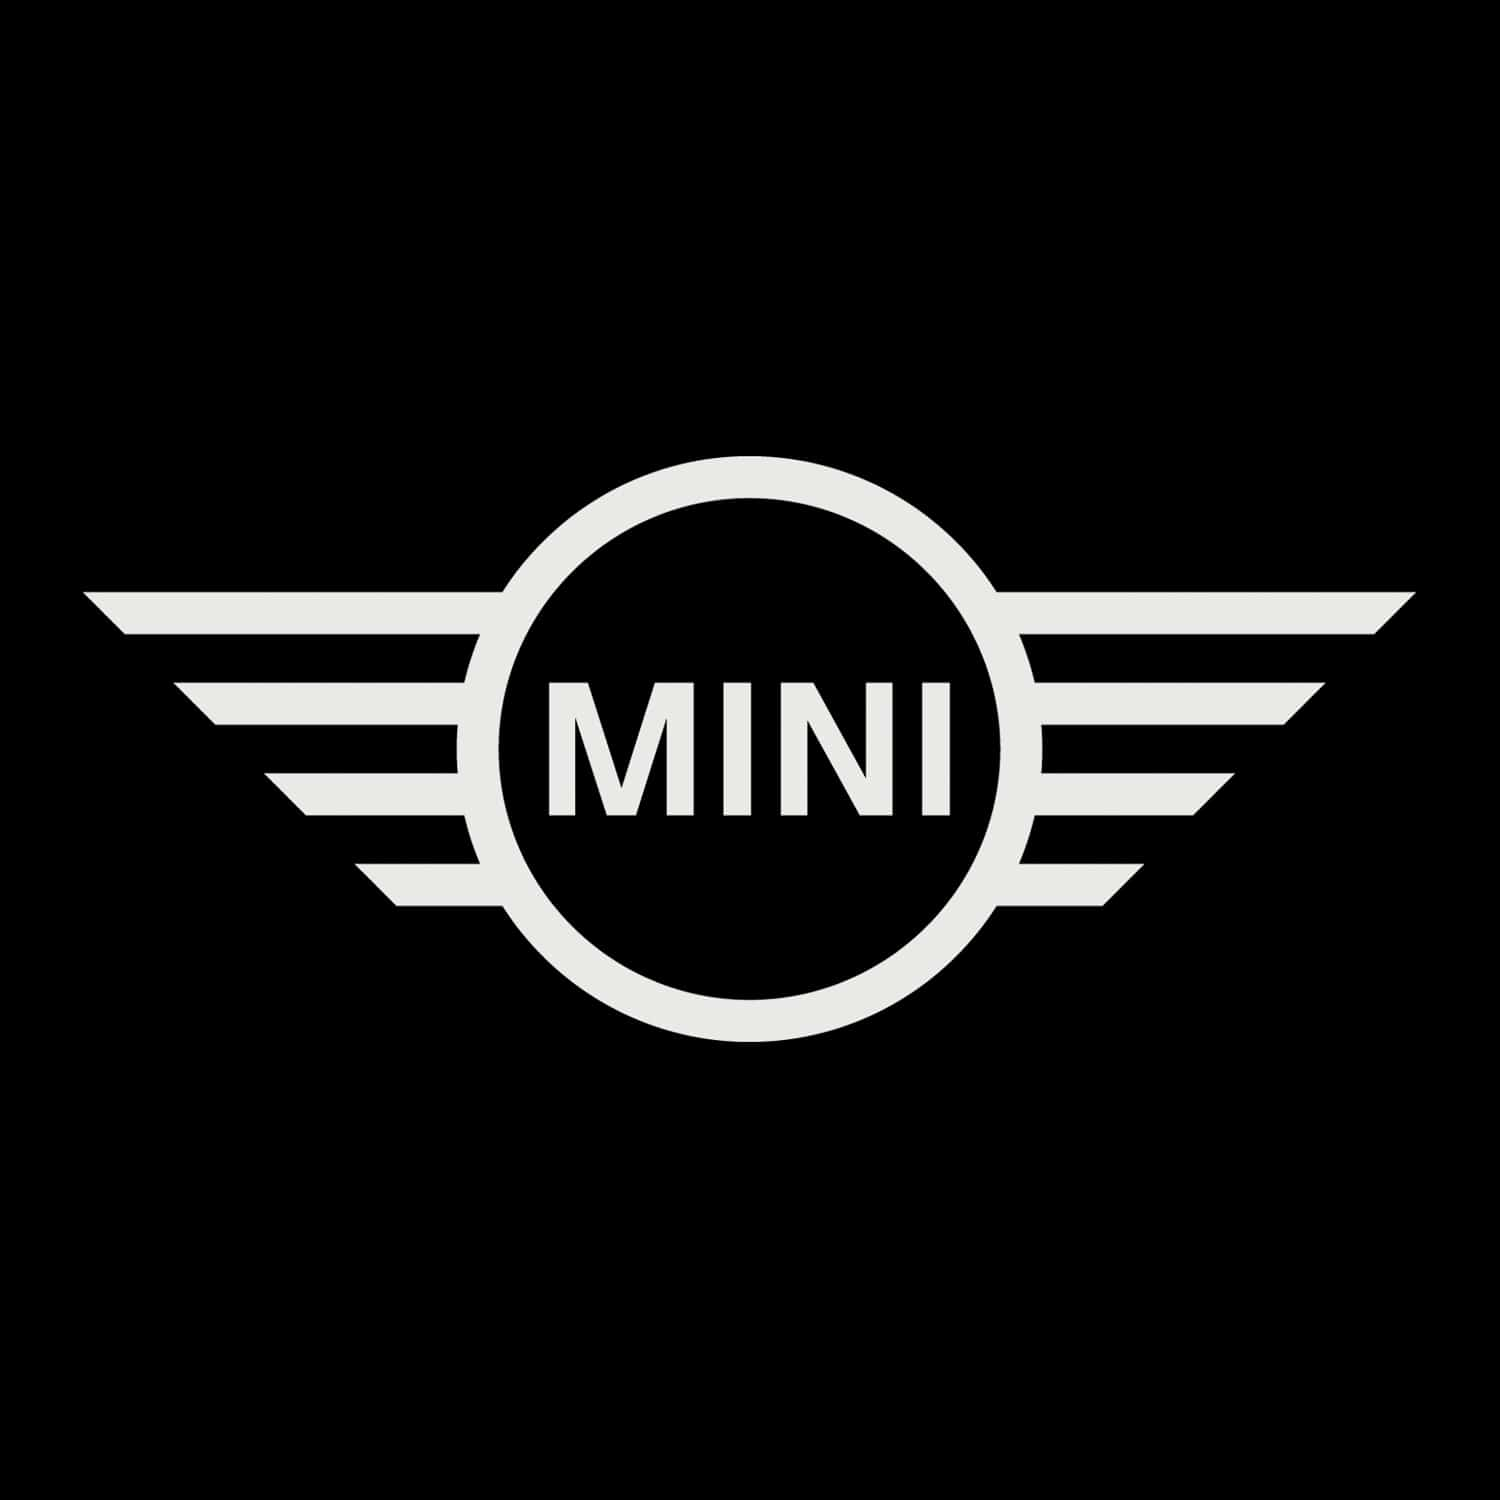 the new mini logo design